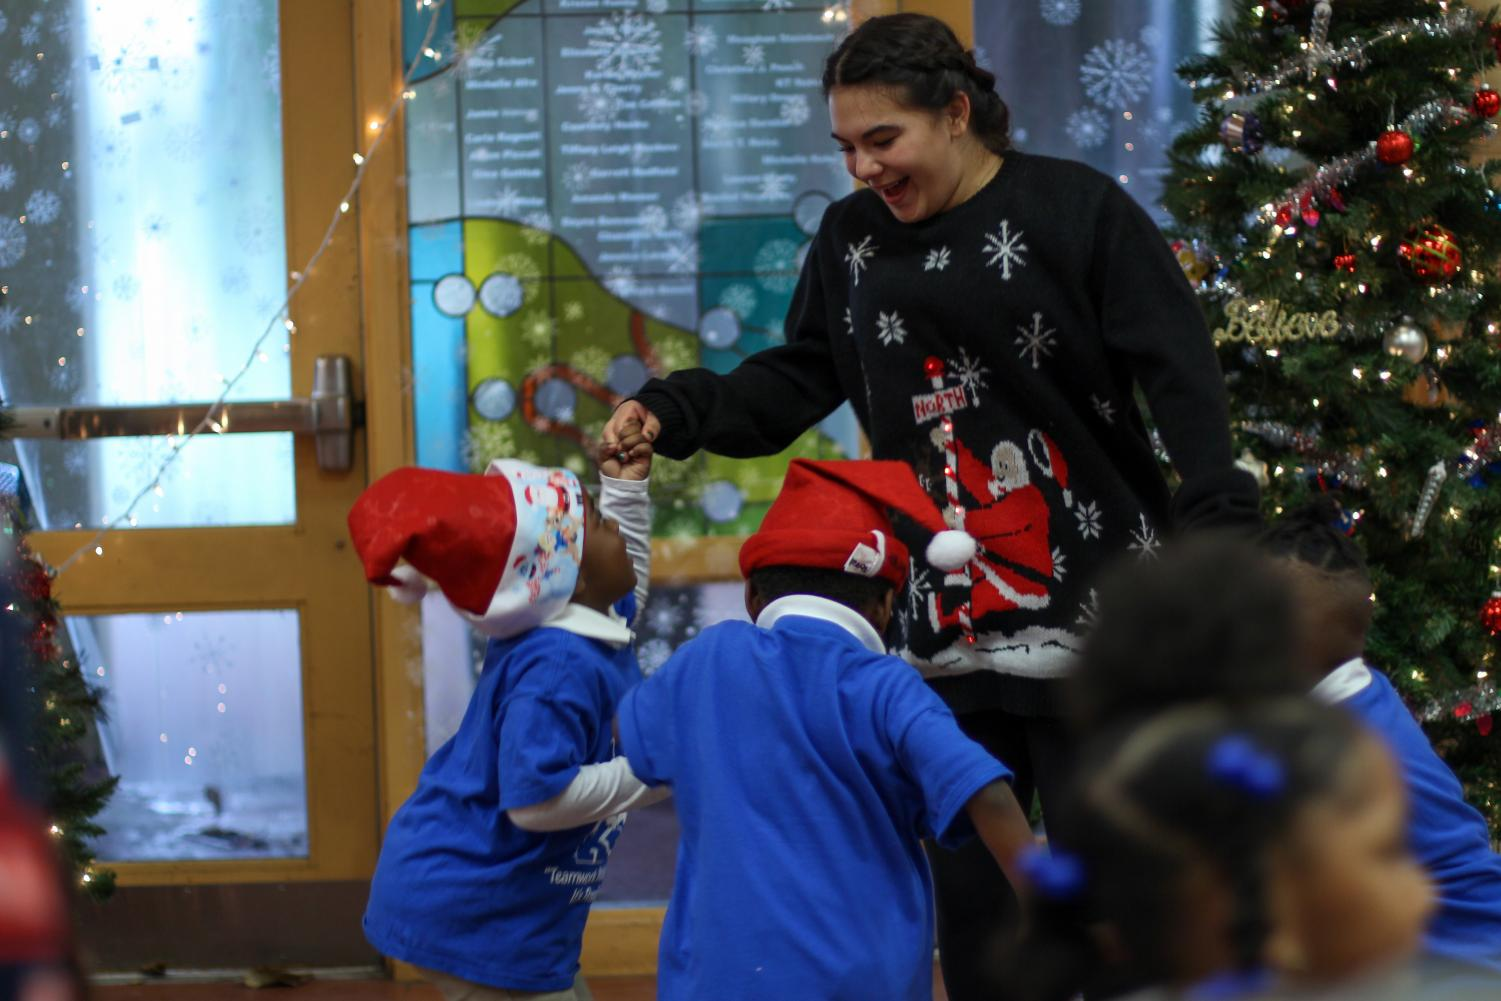 JEFFERSON JUBILEE DELIVERS A HOLIDAY SURPRISE TO ELEMENTARY STUDENTS